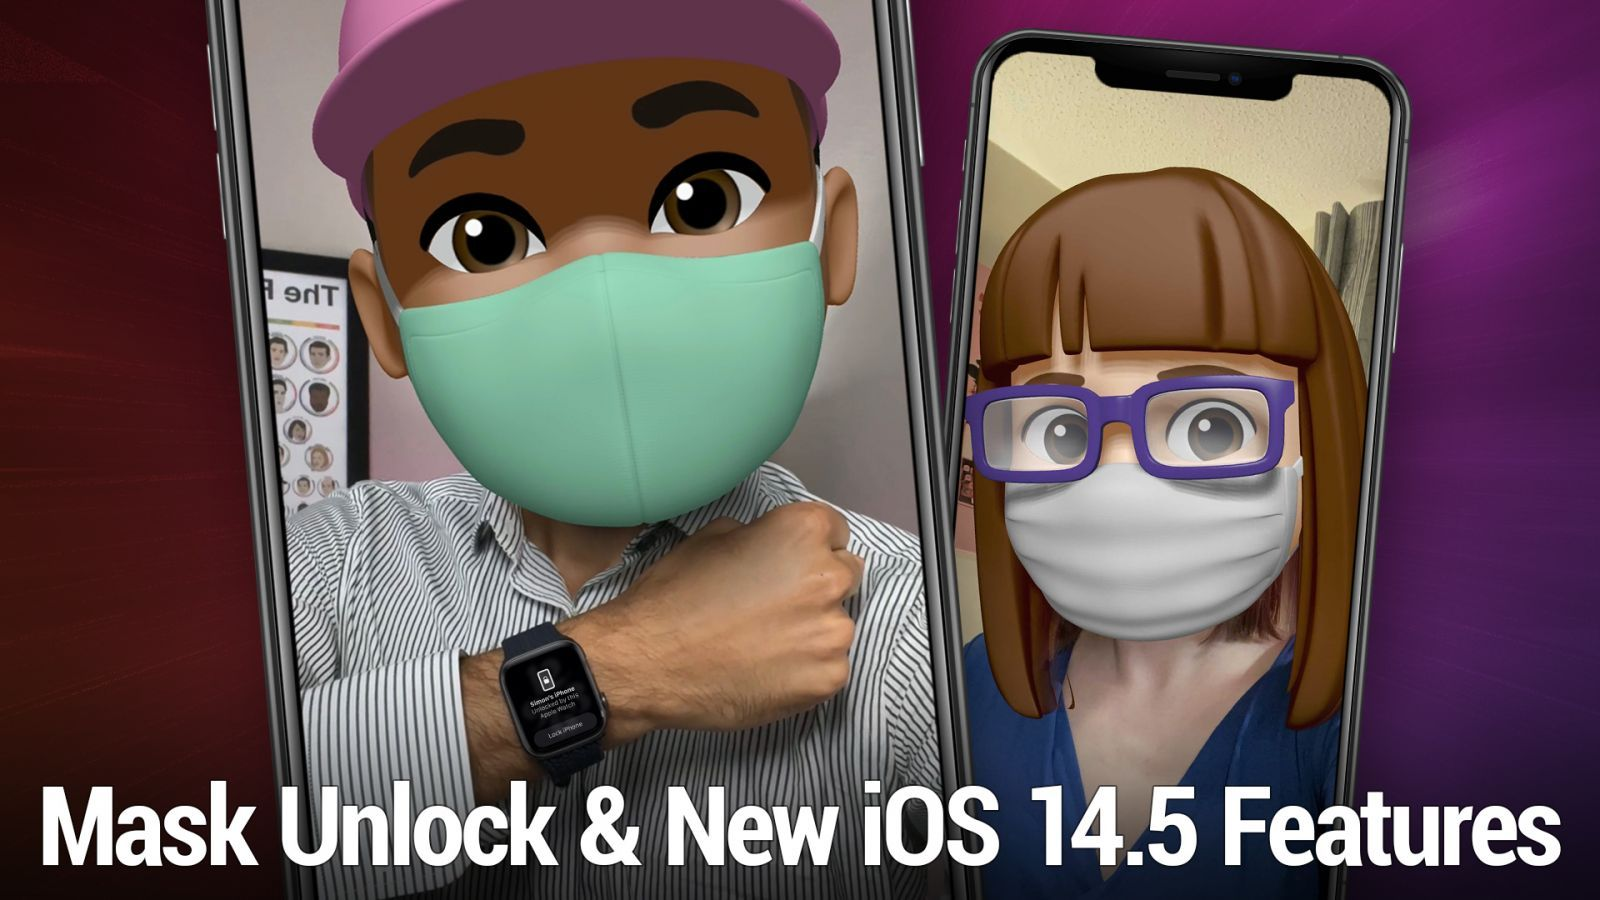 iOS 547: All the New Features in iOS 14.5 - Apple Watch mask unlock, App Tracking Transparency, new Siri voices